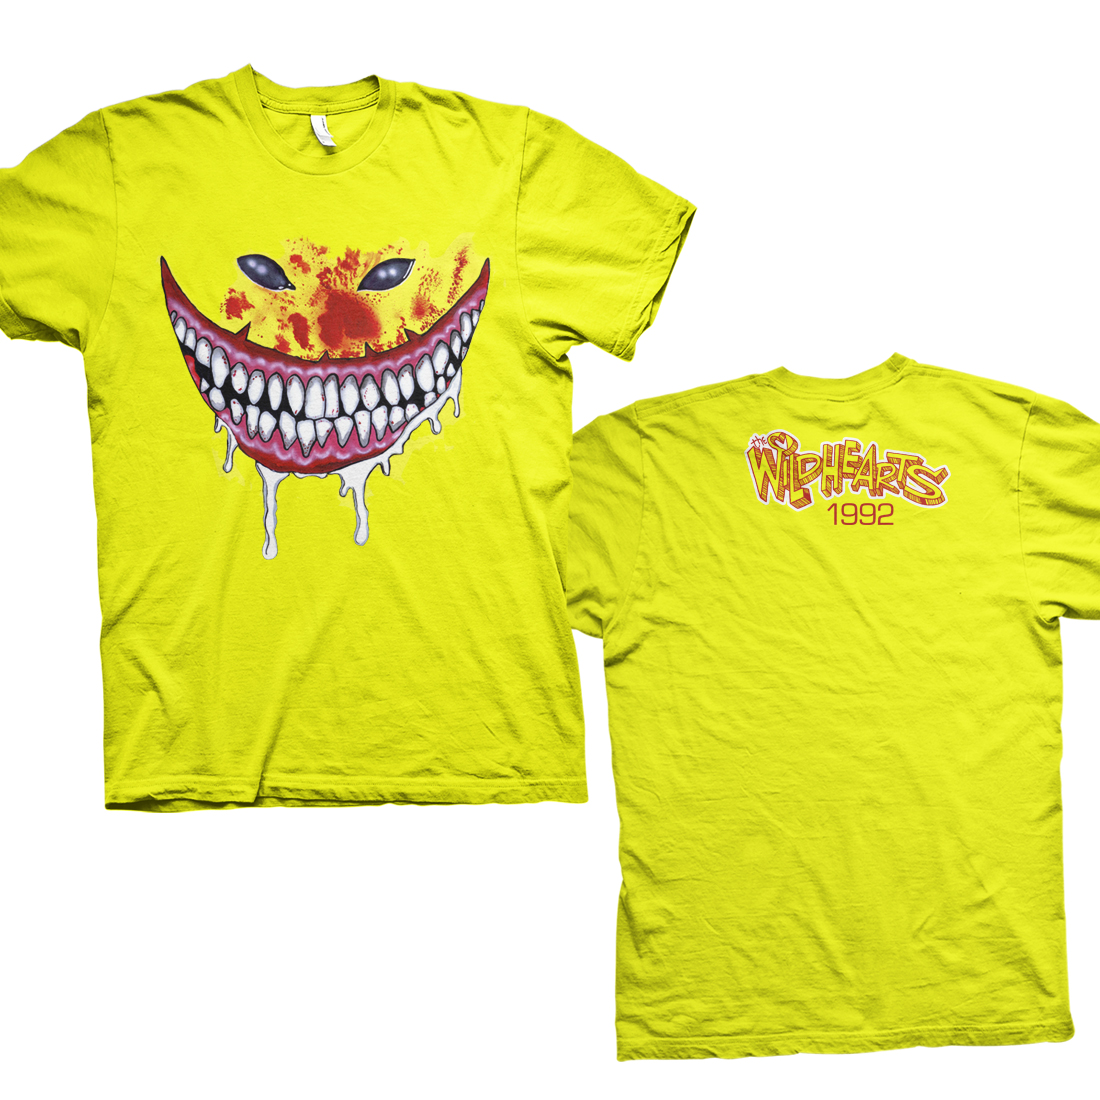 Jumbo OG Smiley Face – Daisy Yellow Tee